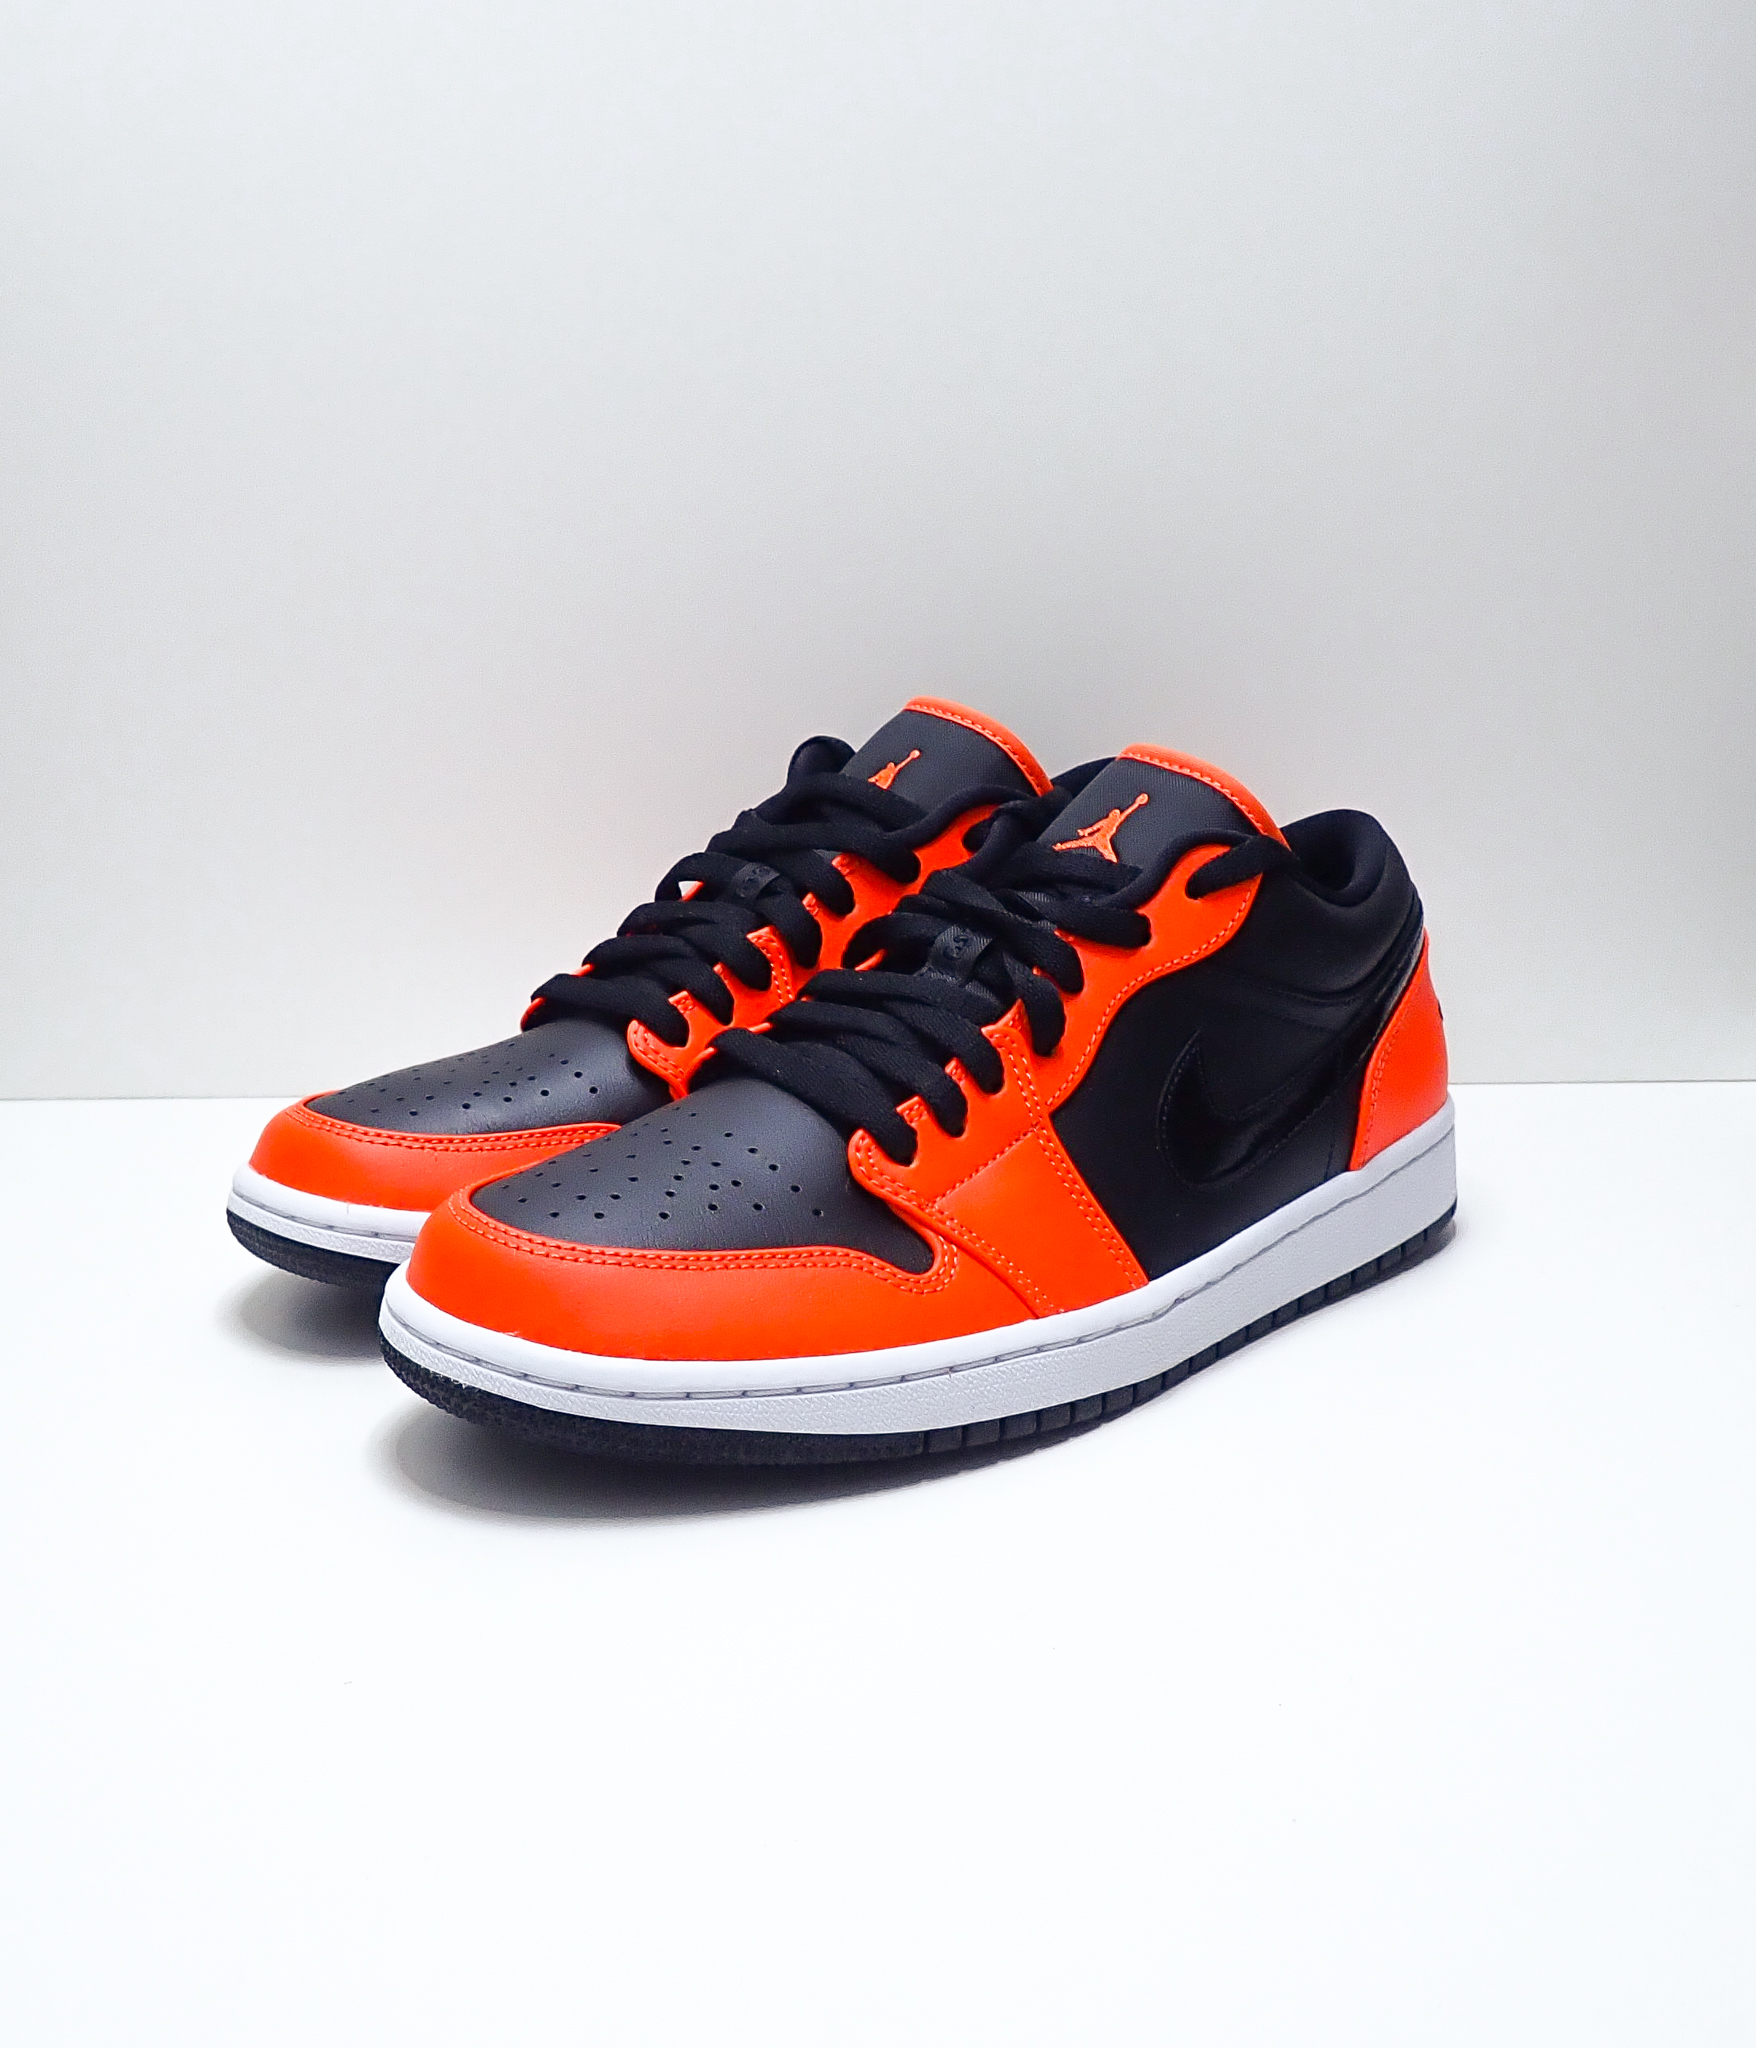 Jordan 1 Low SE Turf Orange